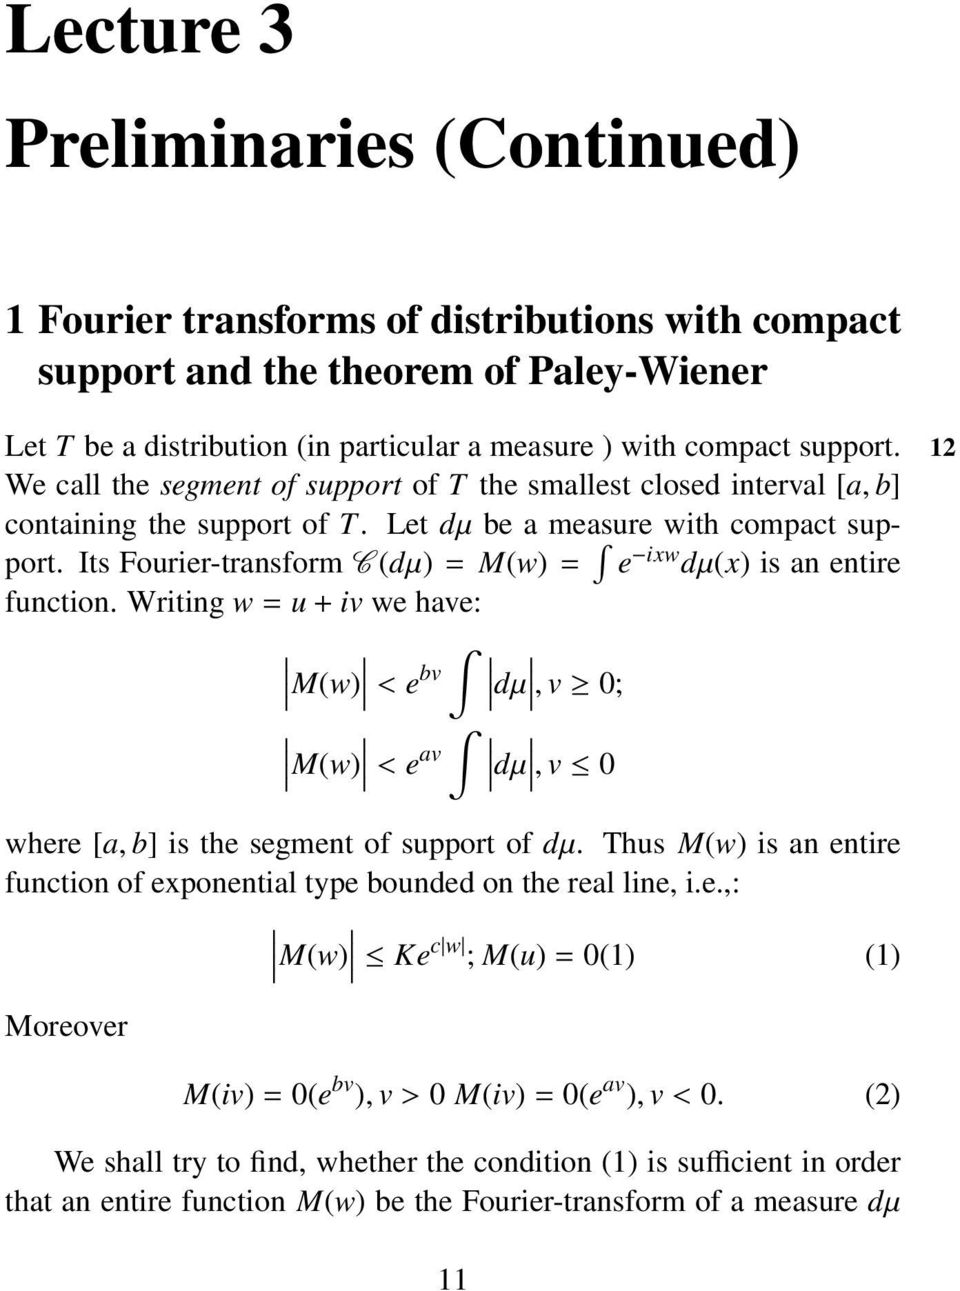 Its Fourier-transform C (dµ)= M(w)= e ixw dµ(x) is an entire function. Writing w = u + iv we have: M(w) <e bv dµ, v 0; M(w) <e av dµ, v 0 where [a, b] is the segment of support of dµ.